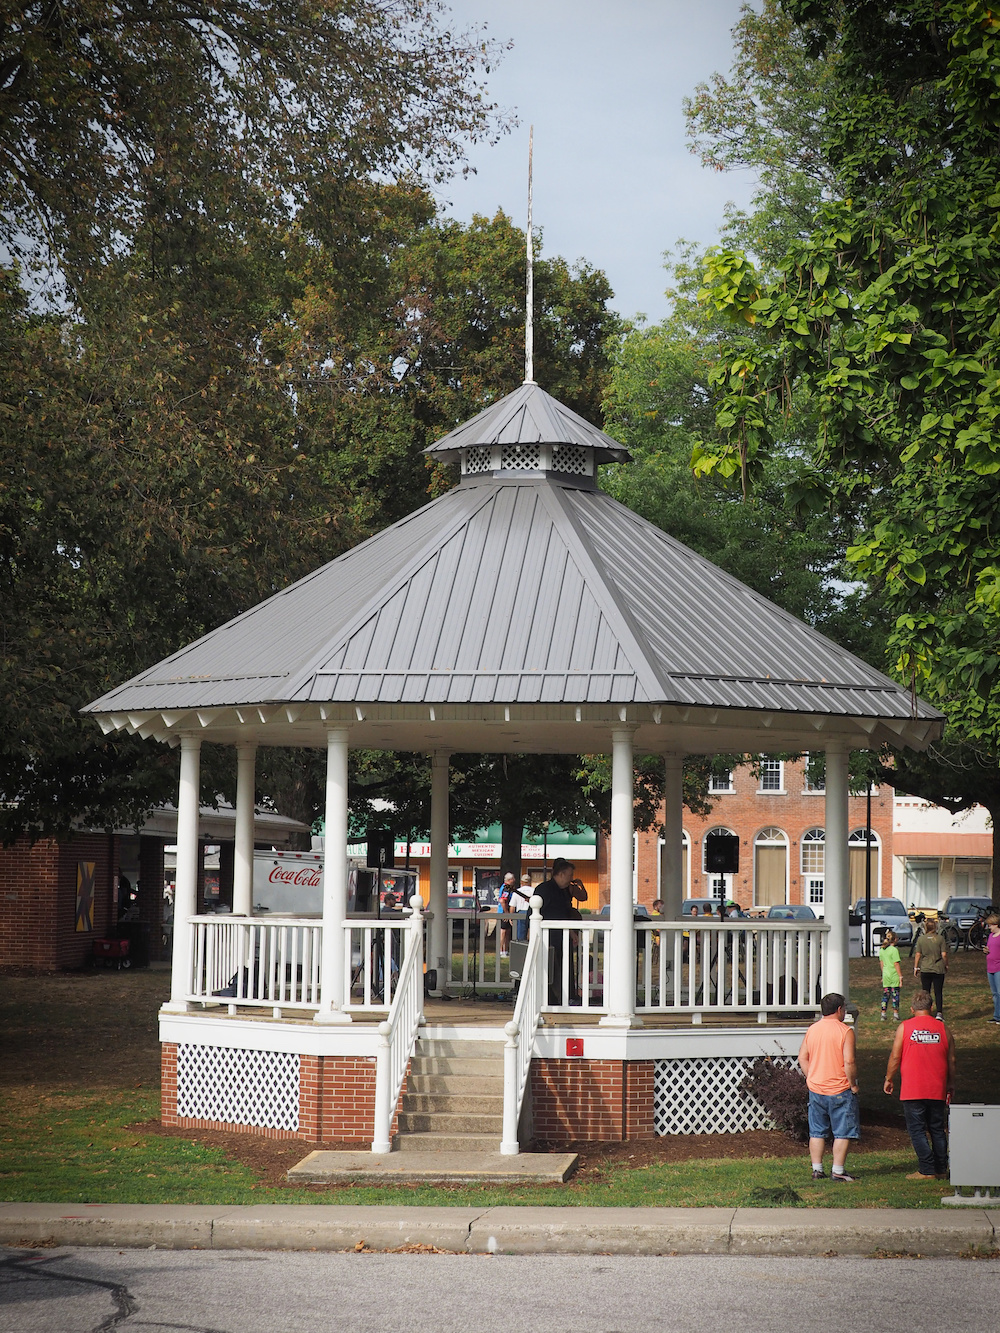 Amish Roofers bandstand 2